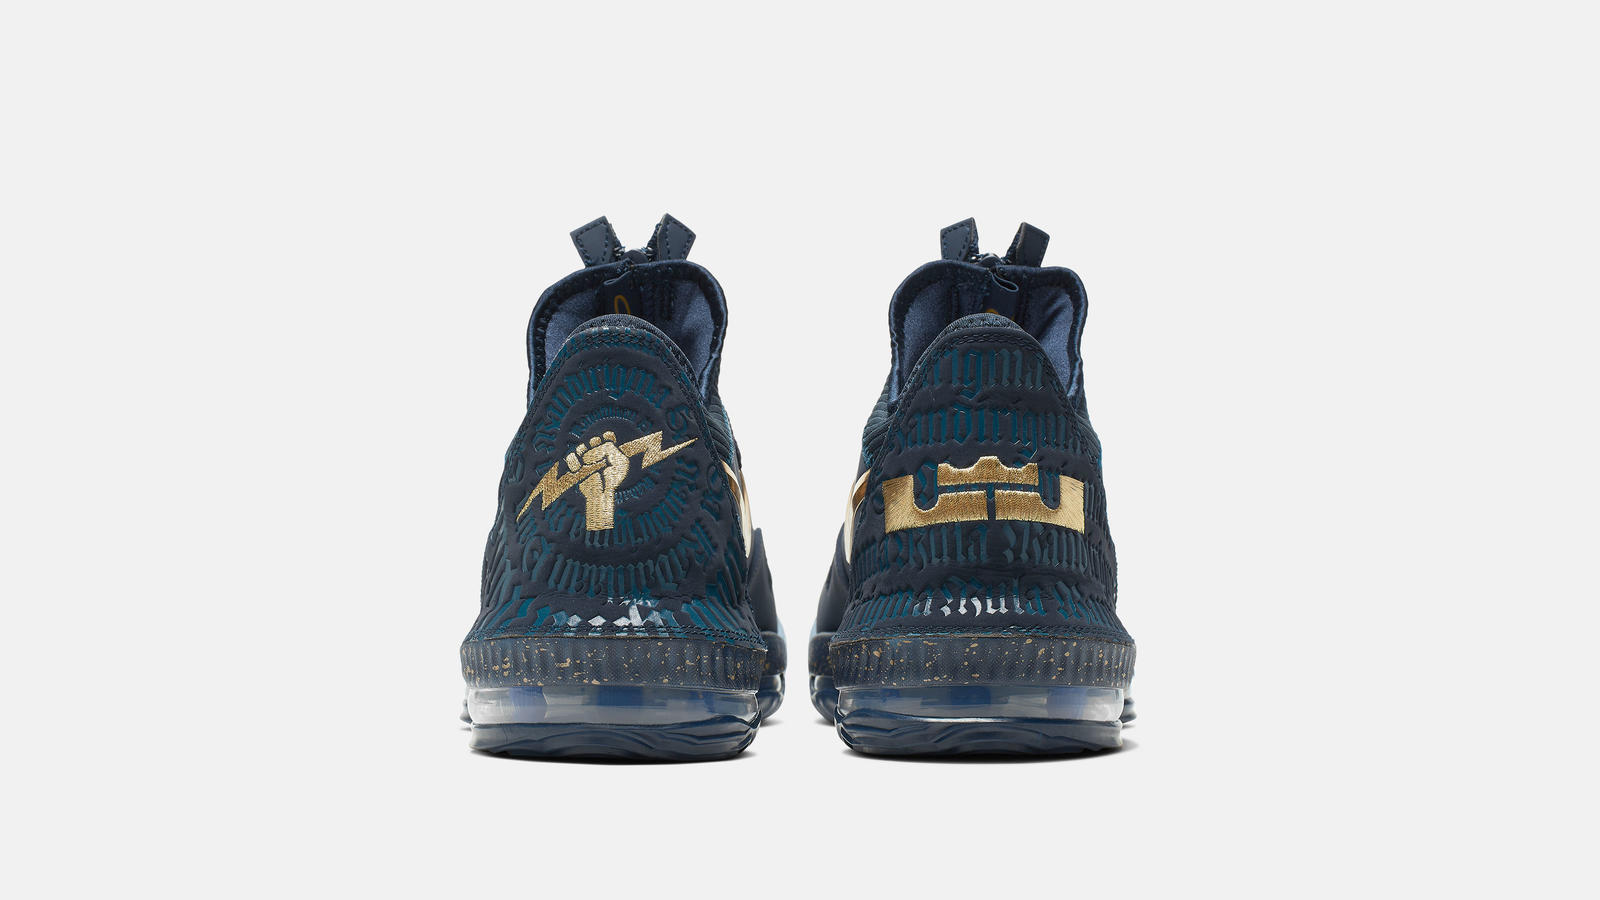 Titan x Nike LeBron 16 Low Agimat Release Date Announced: Official s